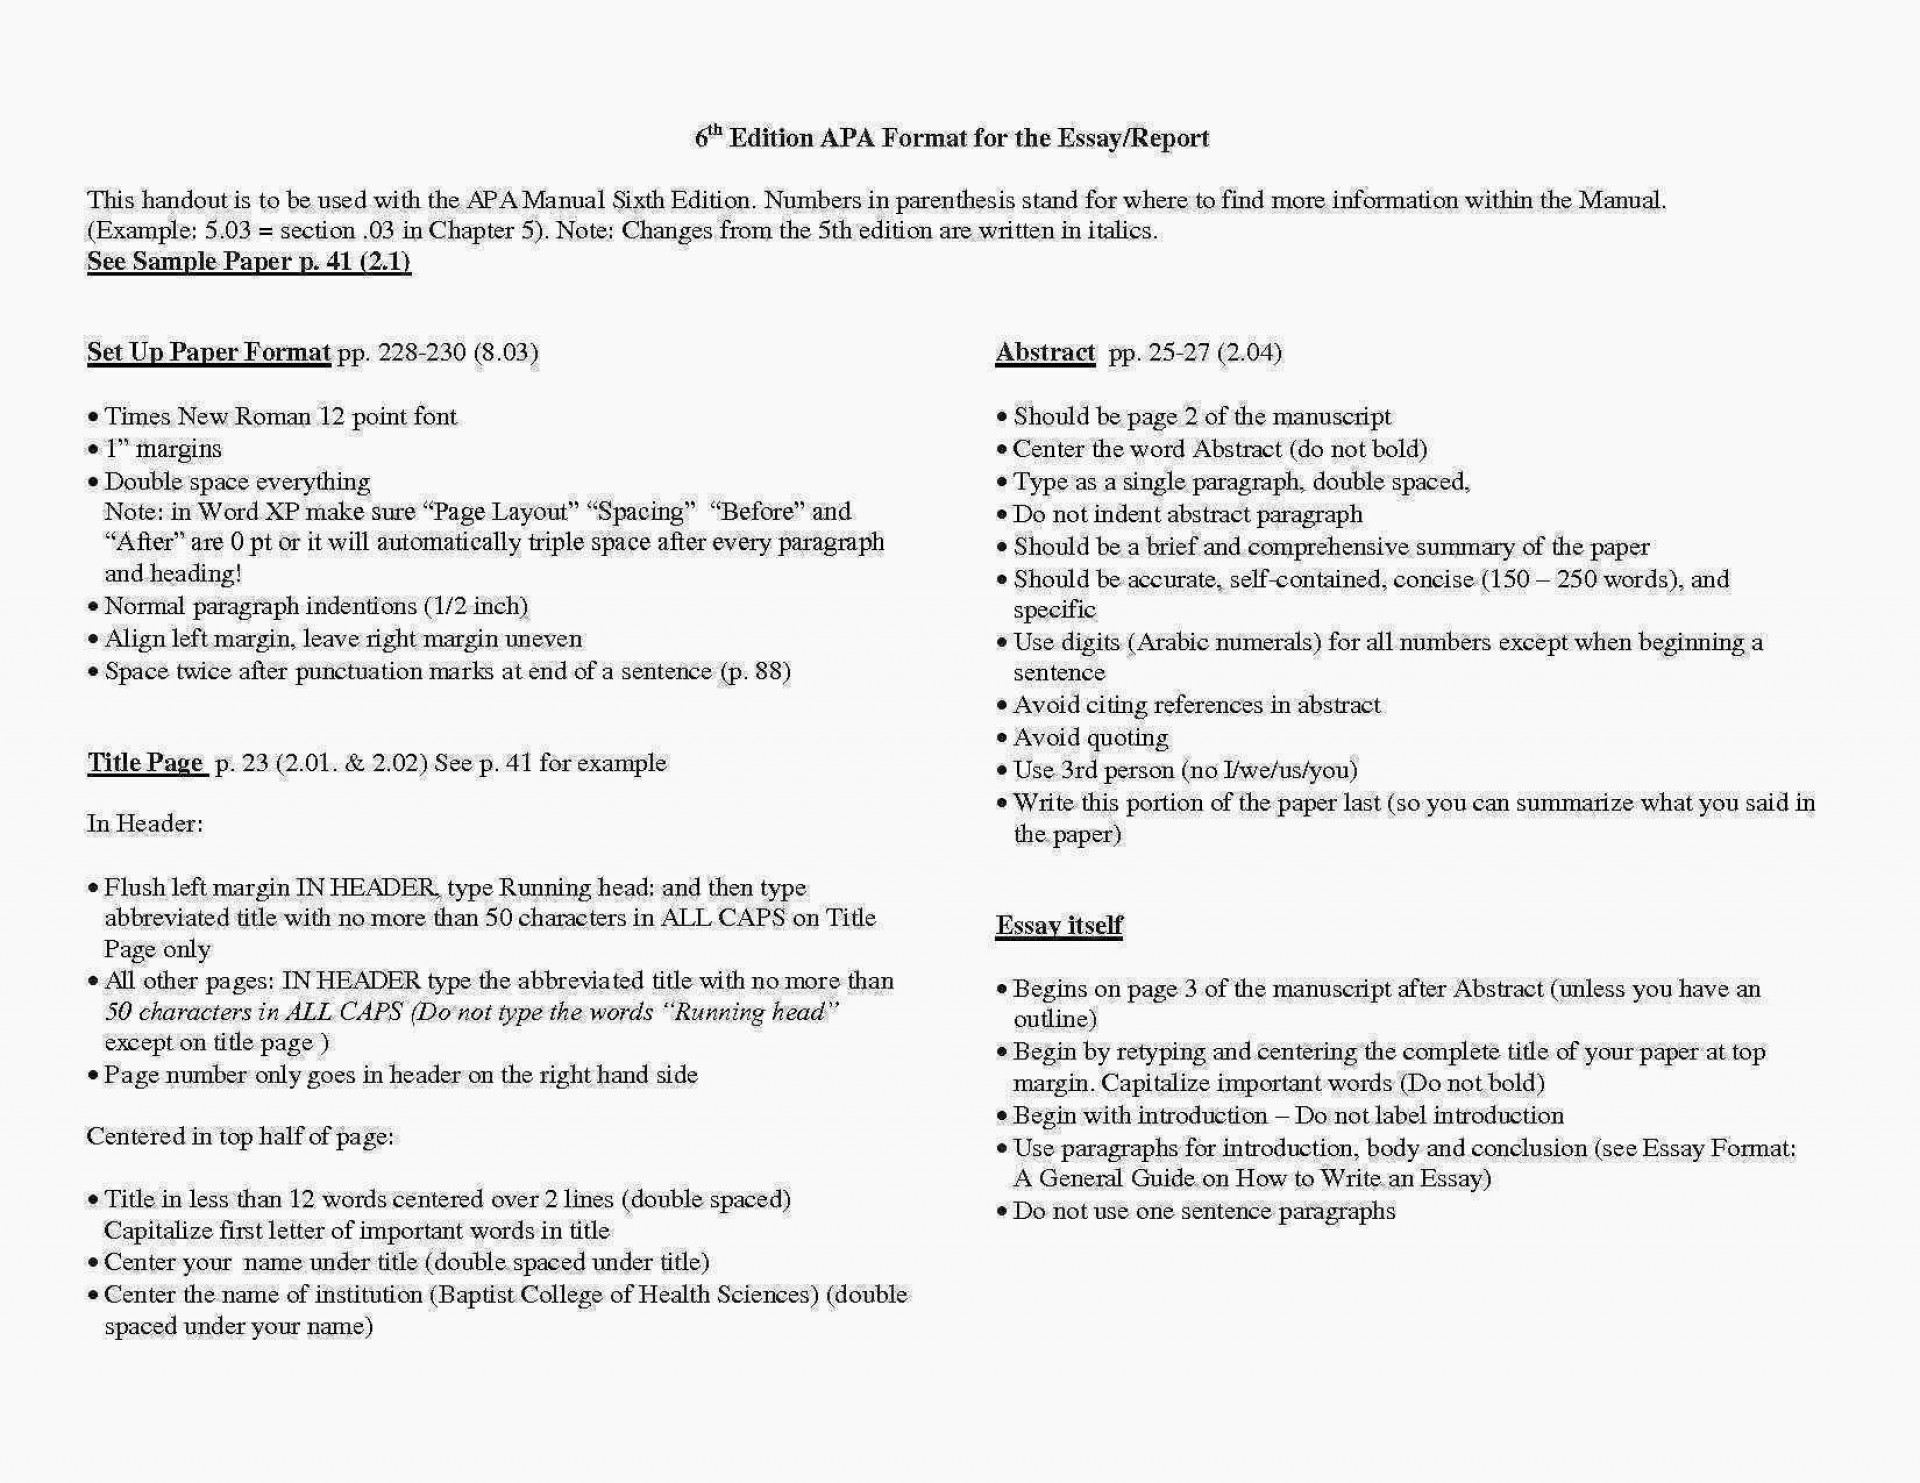 008 Magnificent Research Paper Proposal Template Apa Highest Quality 1920